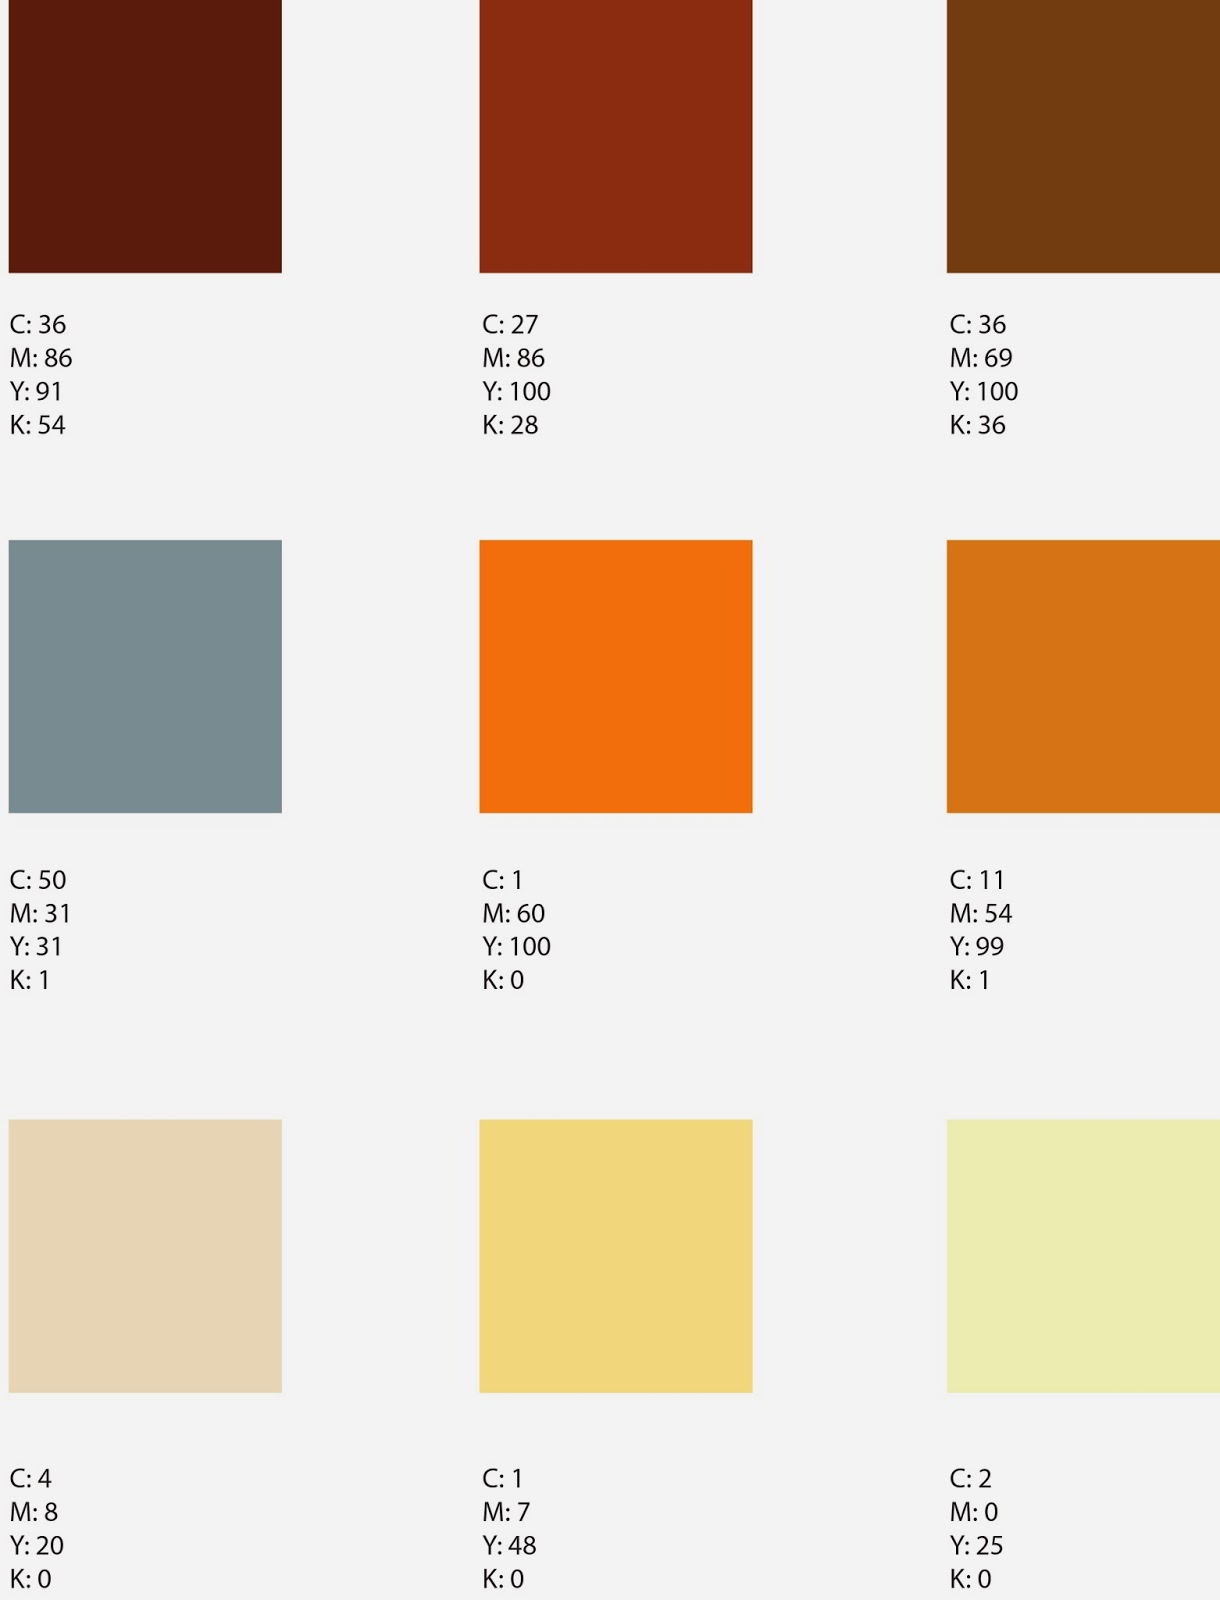 First row: Reddish browns, Second row: pale blues and deep oranges, Last Row: Light yellow and creams